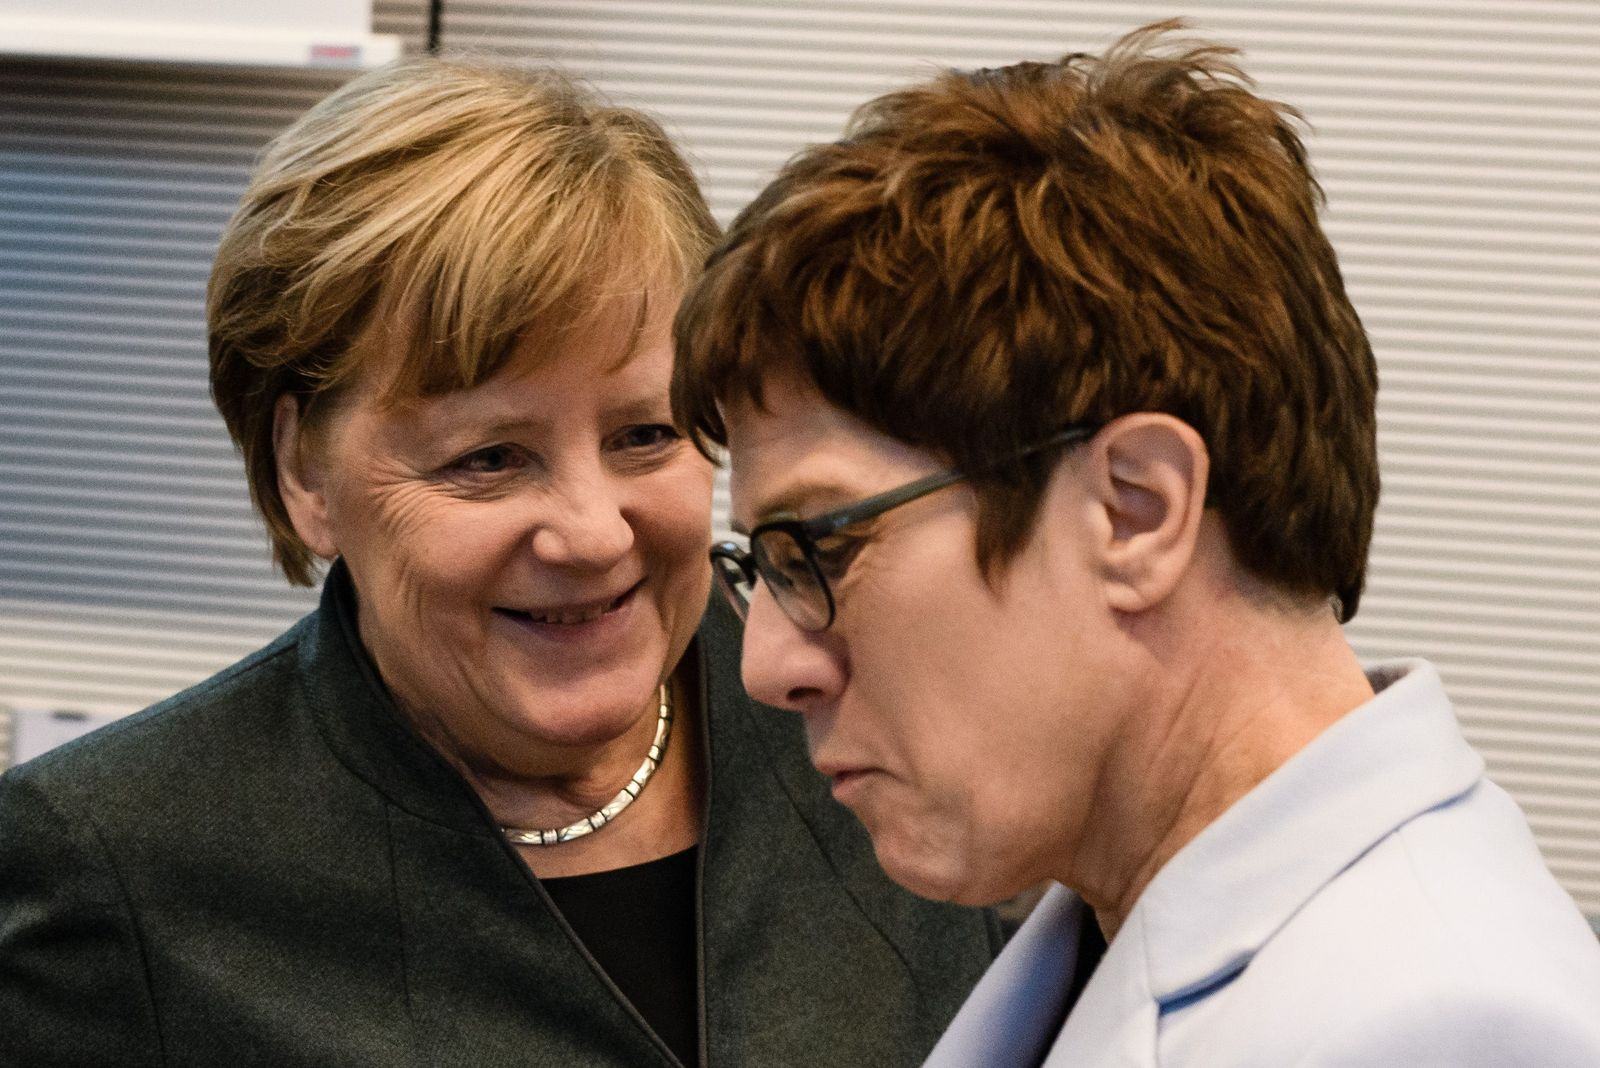 CDU and CSU faction meeting, Berlin, Germany - 11 Feb 2020